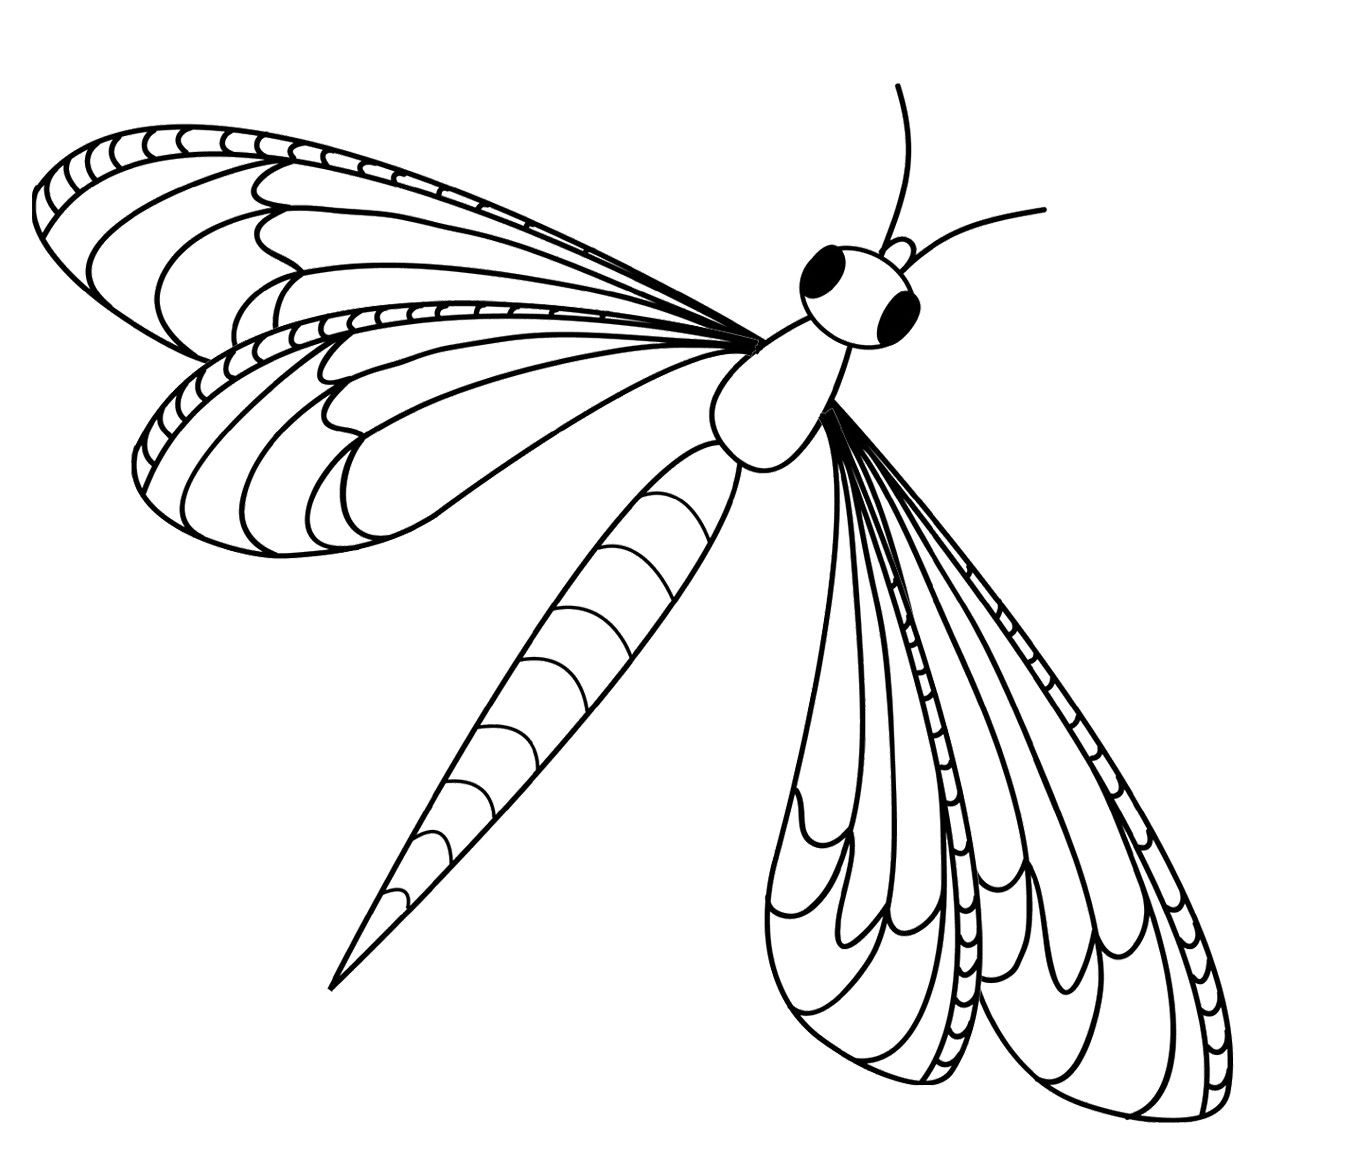 Printable Dragonfly Coloring Pages Coloring Pages Dragonfly